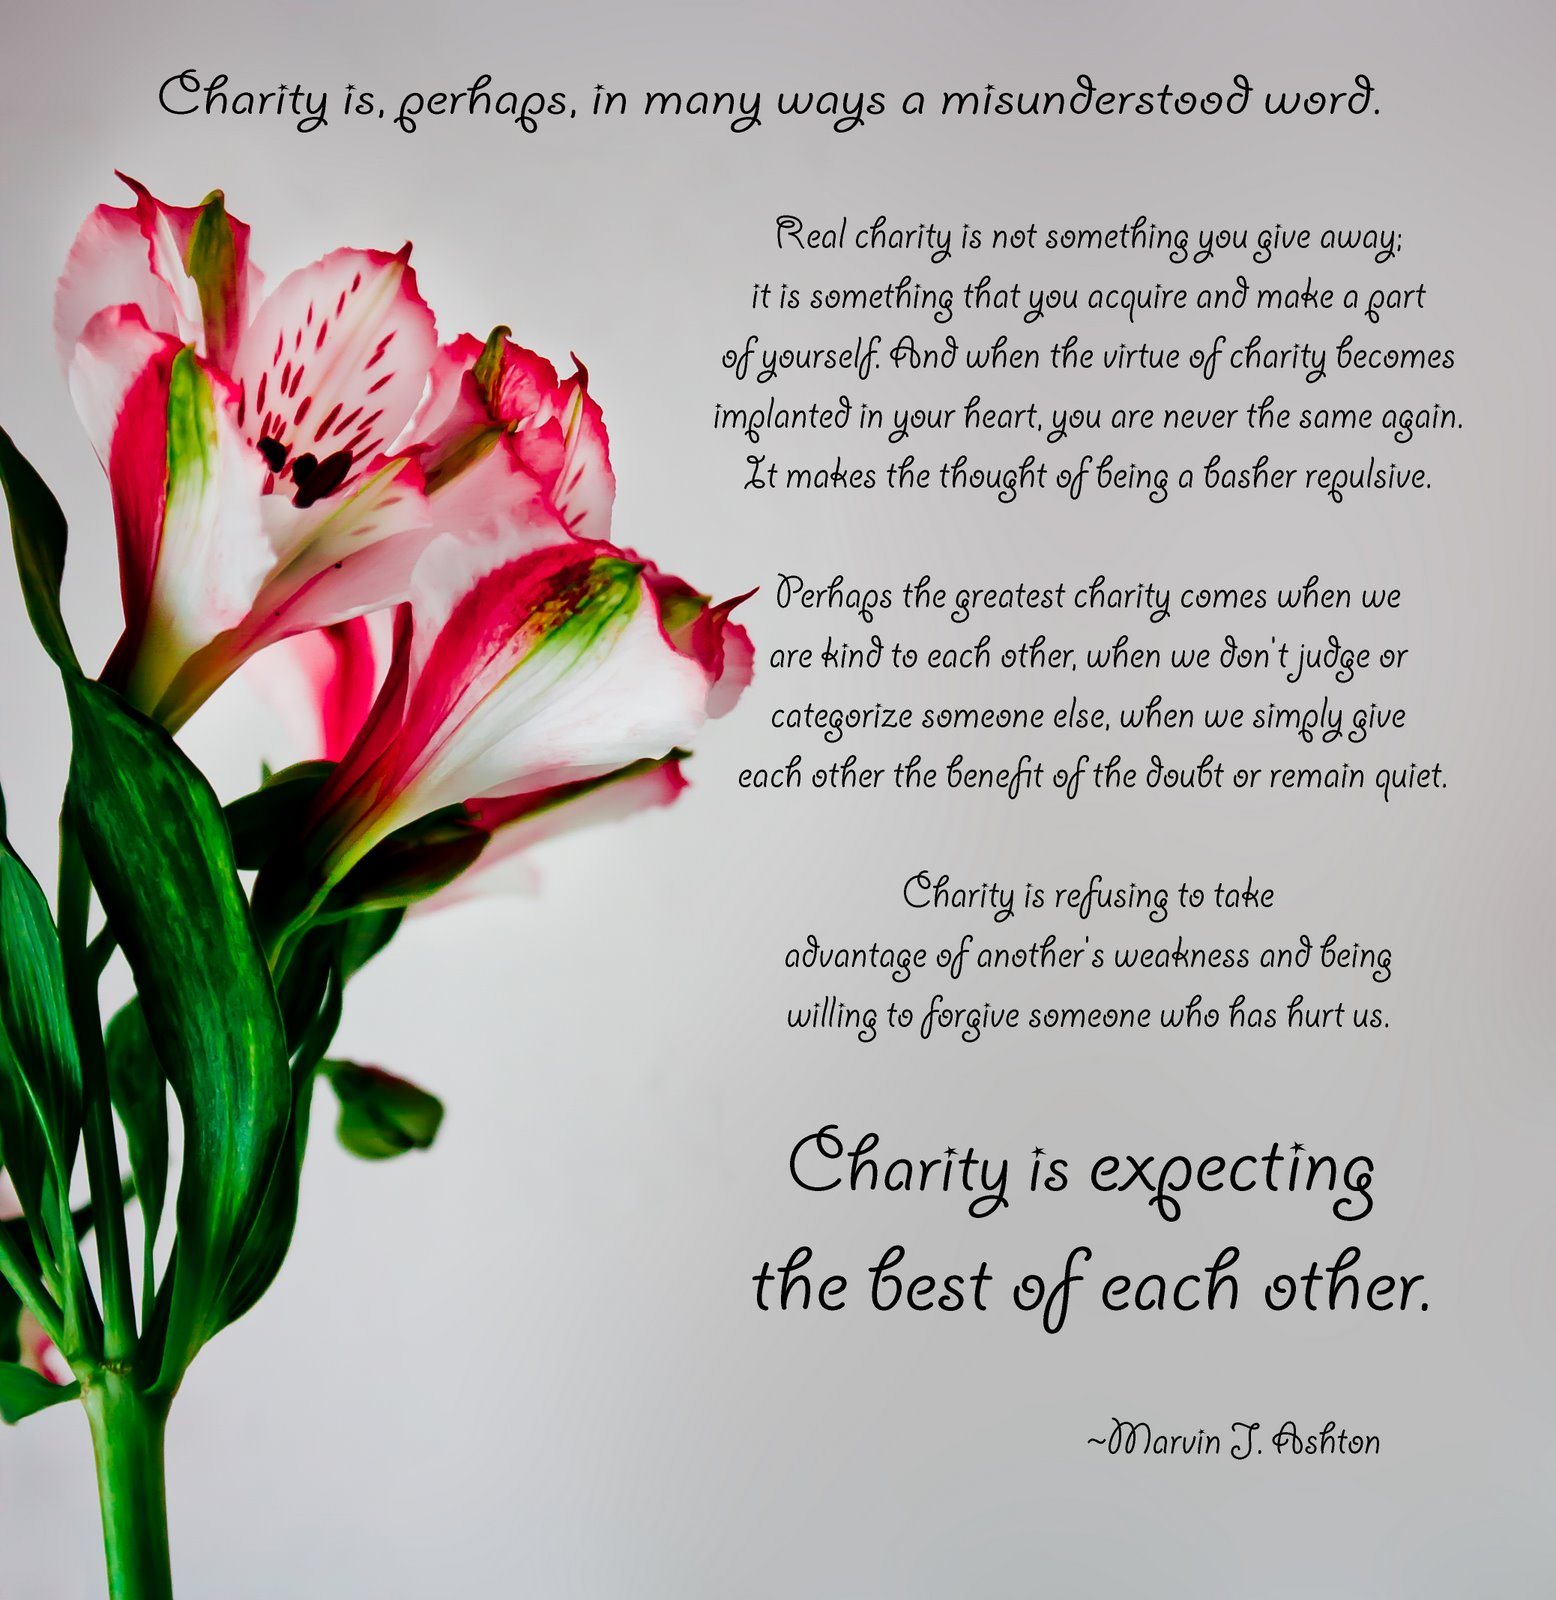 Quotes About Bouquets Of Flowers: Famous Quotes On Charity. QuotesGram